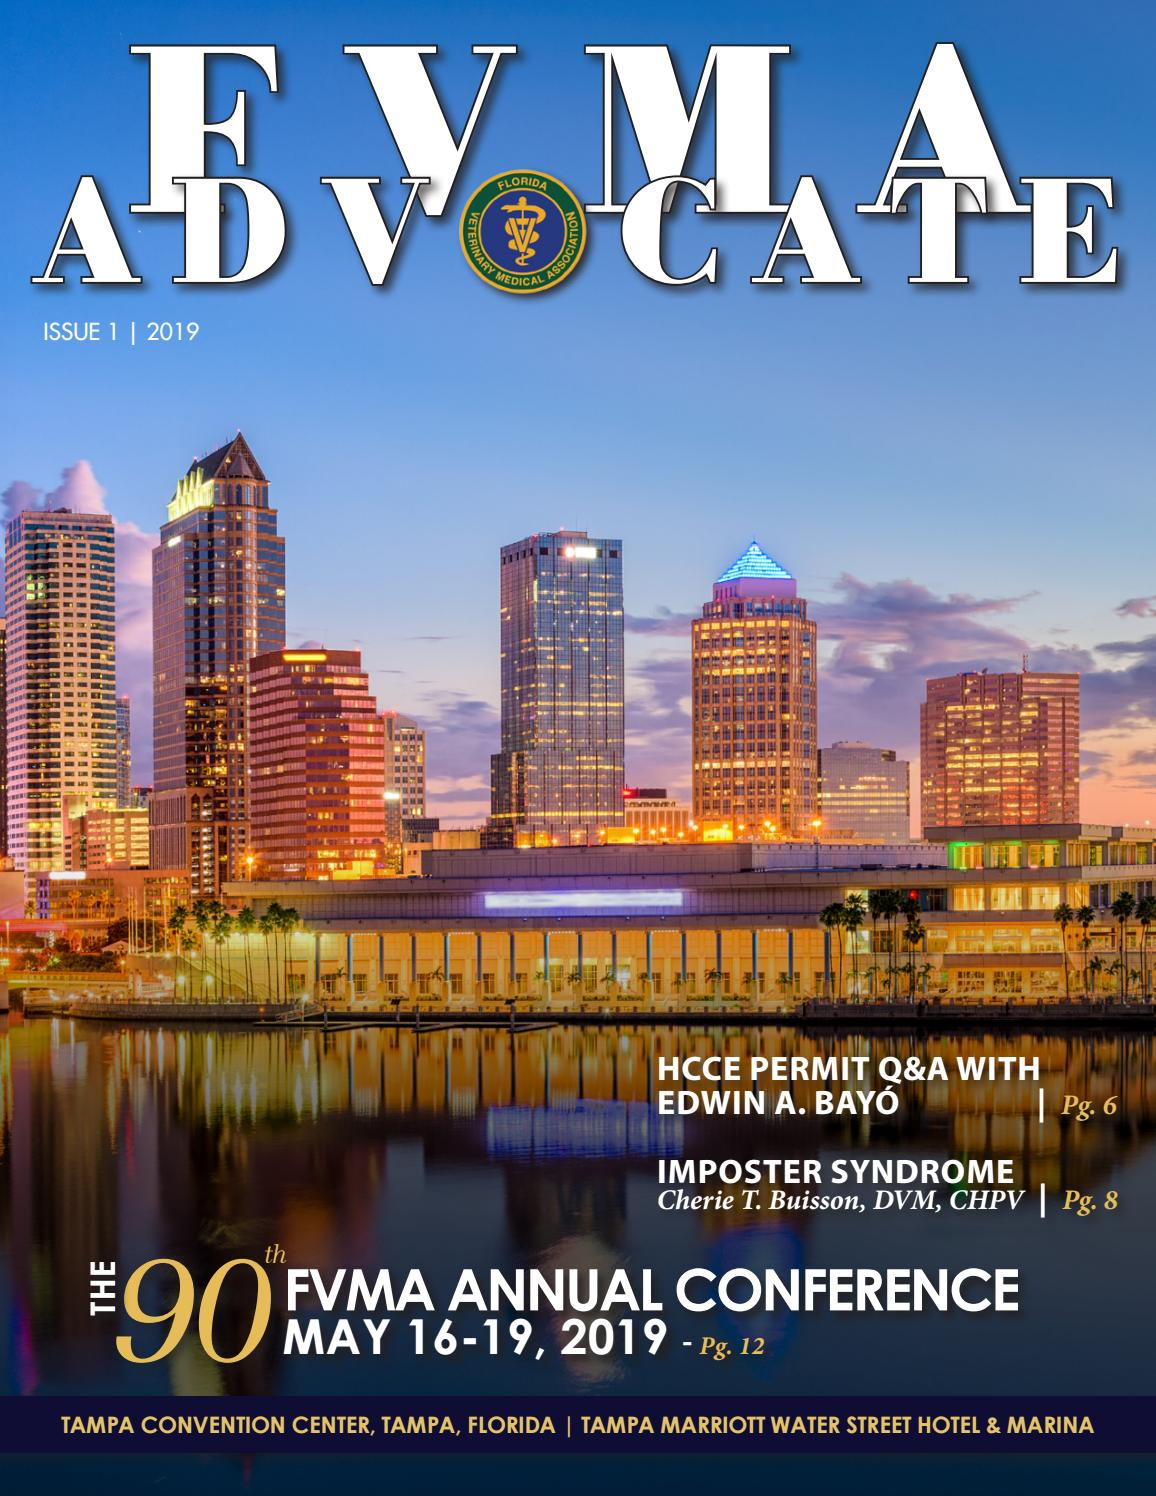 FVMA Advocate Issue 1, 2019 by FVMA - issuu